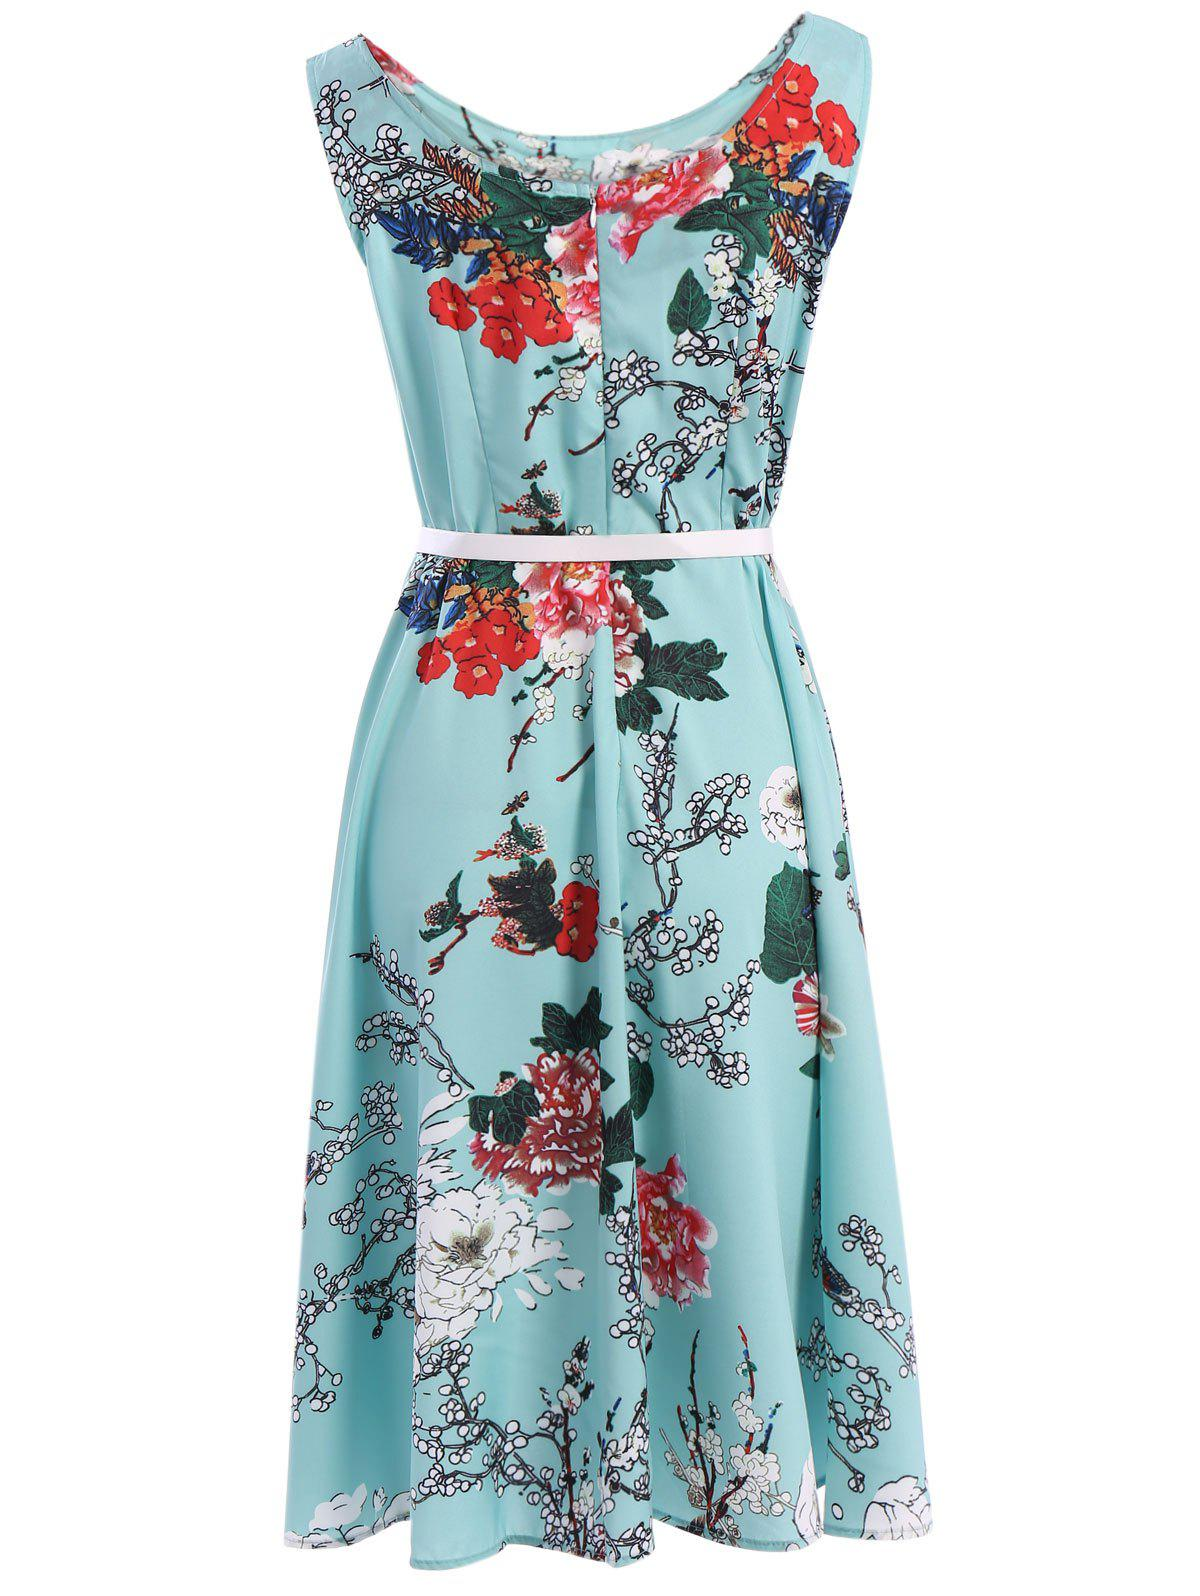 Vintage Women's Round Neck Sleeveless Floral Print Belted A-Line Dress